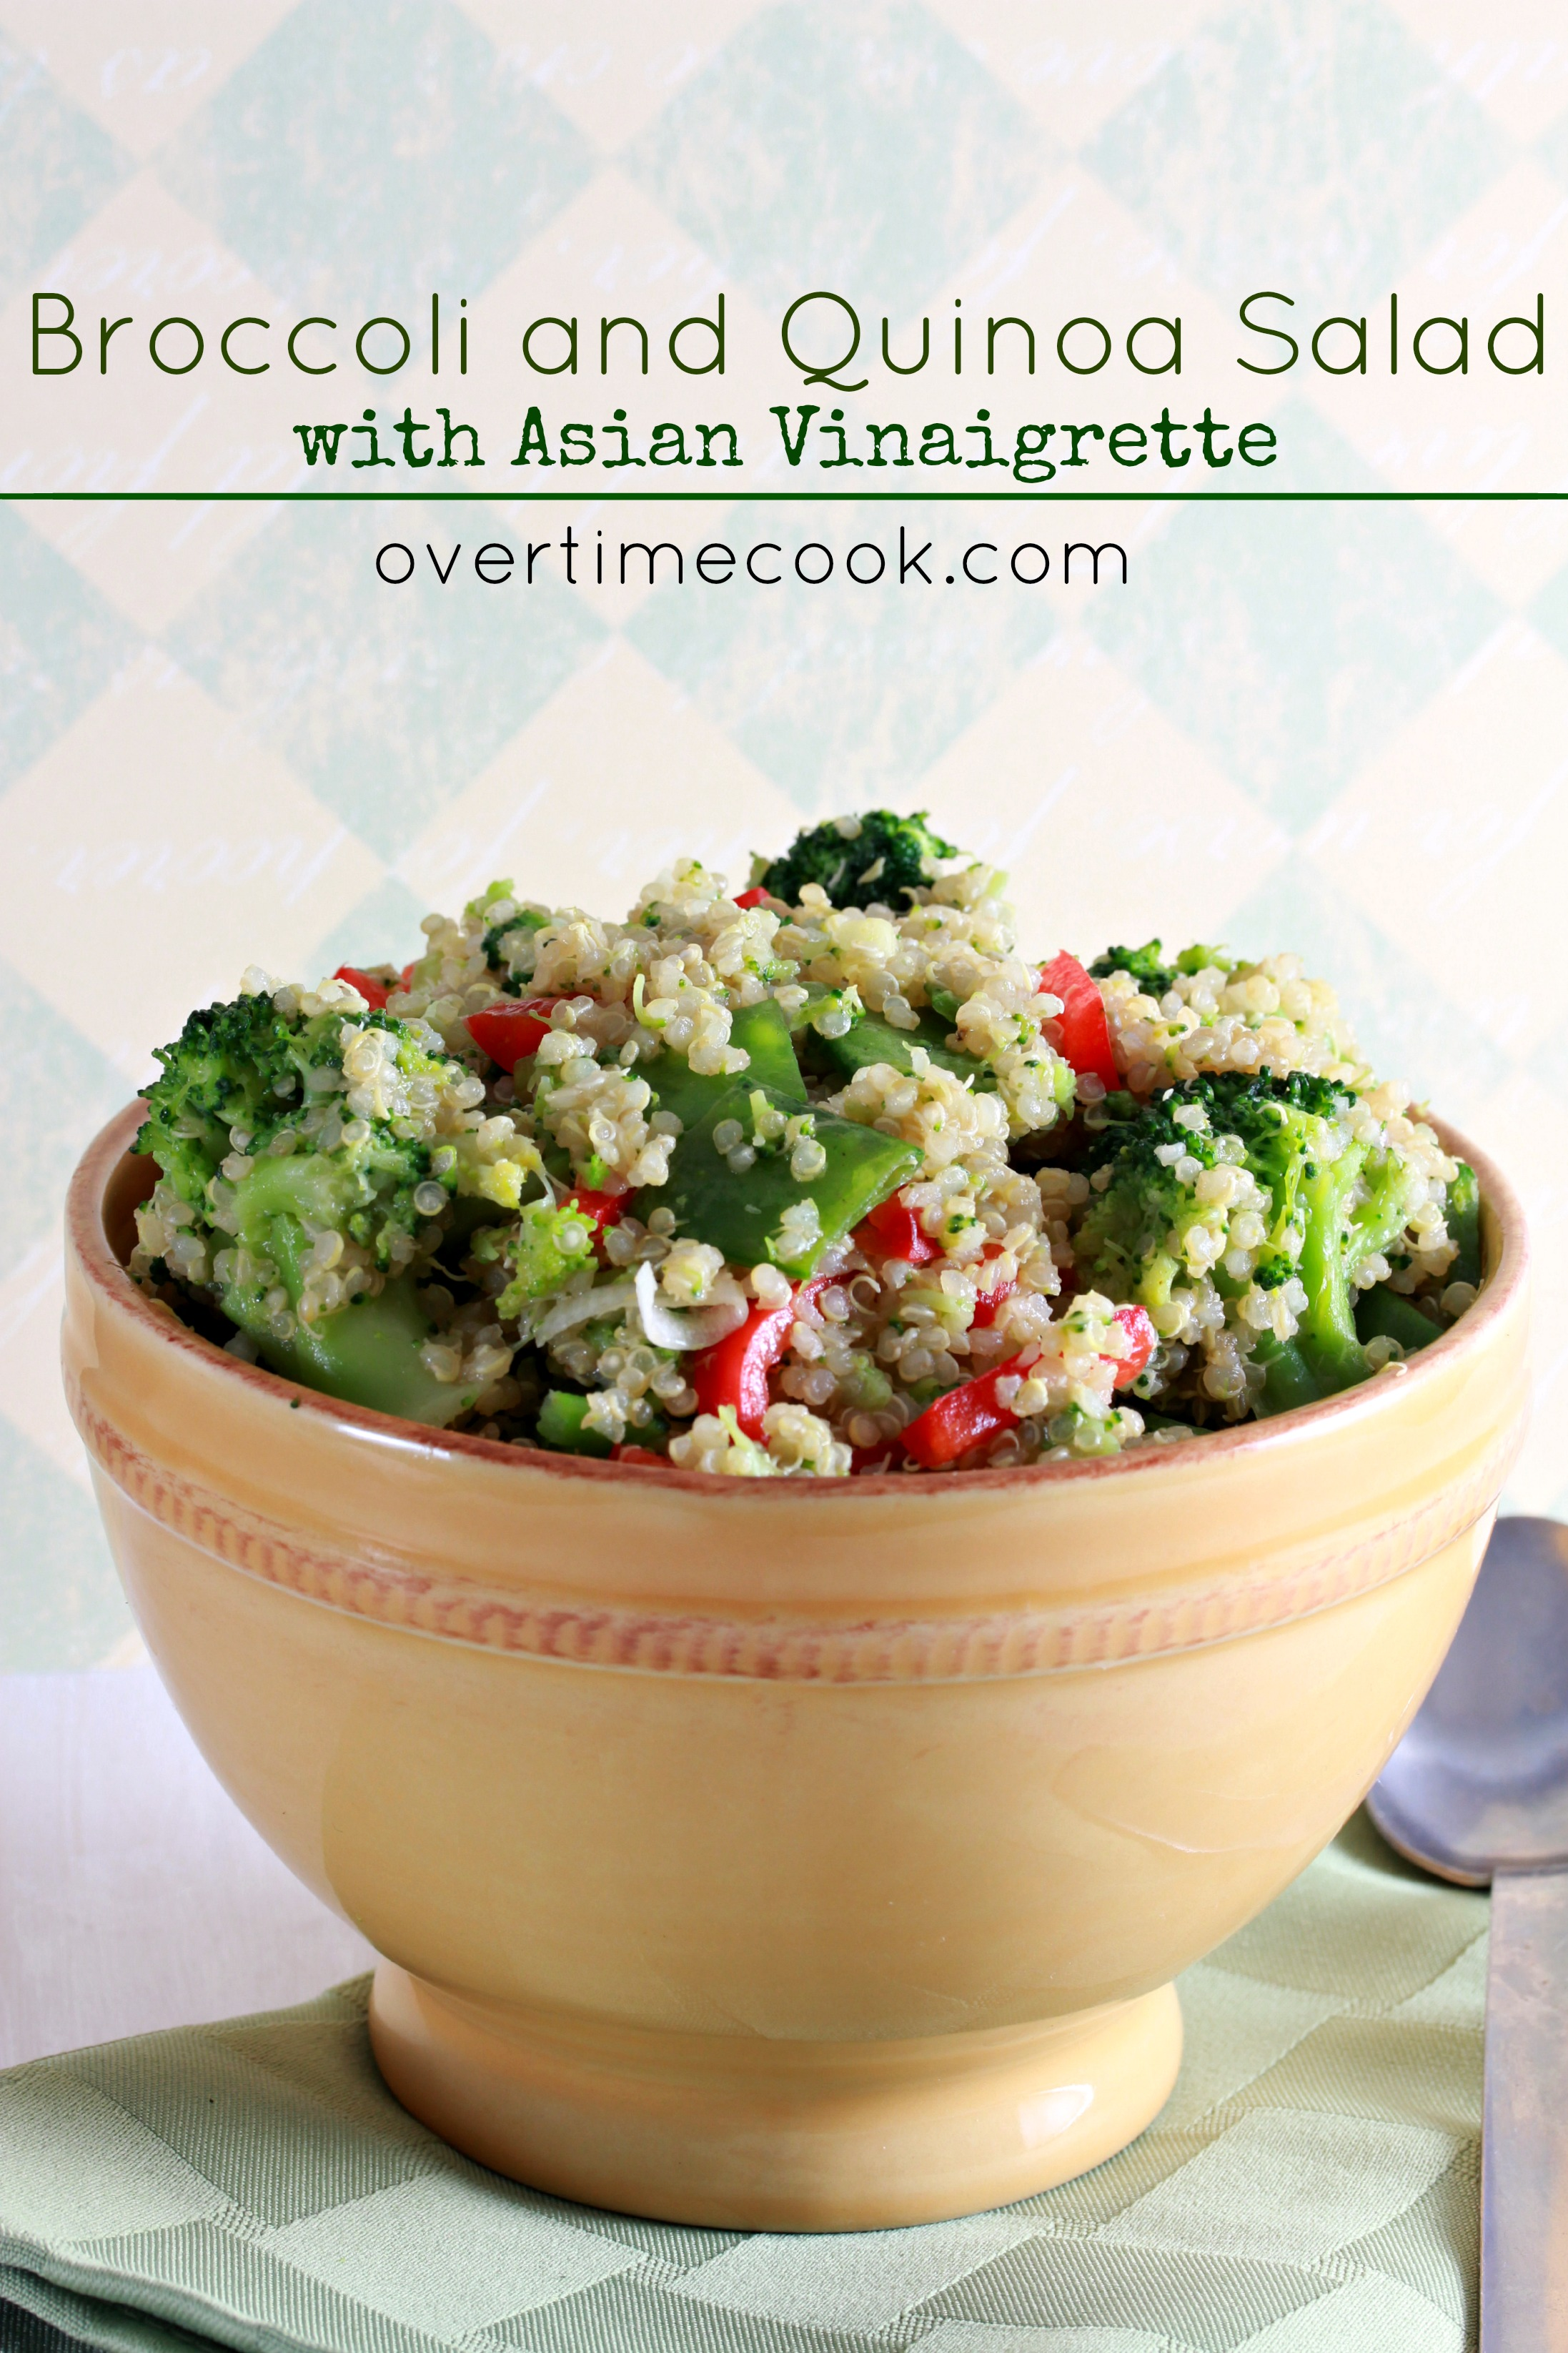 Broccoli and quinoa salad with asian vinaigrette overtime cook broccoli and quinoa salad on overtime cook forumfinder Images